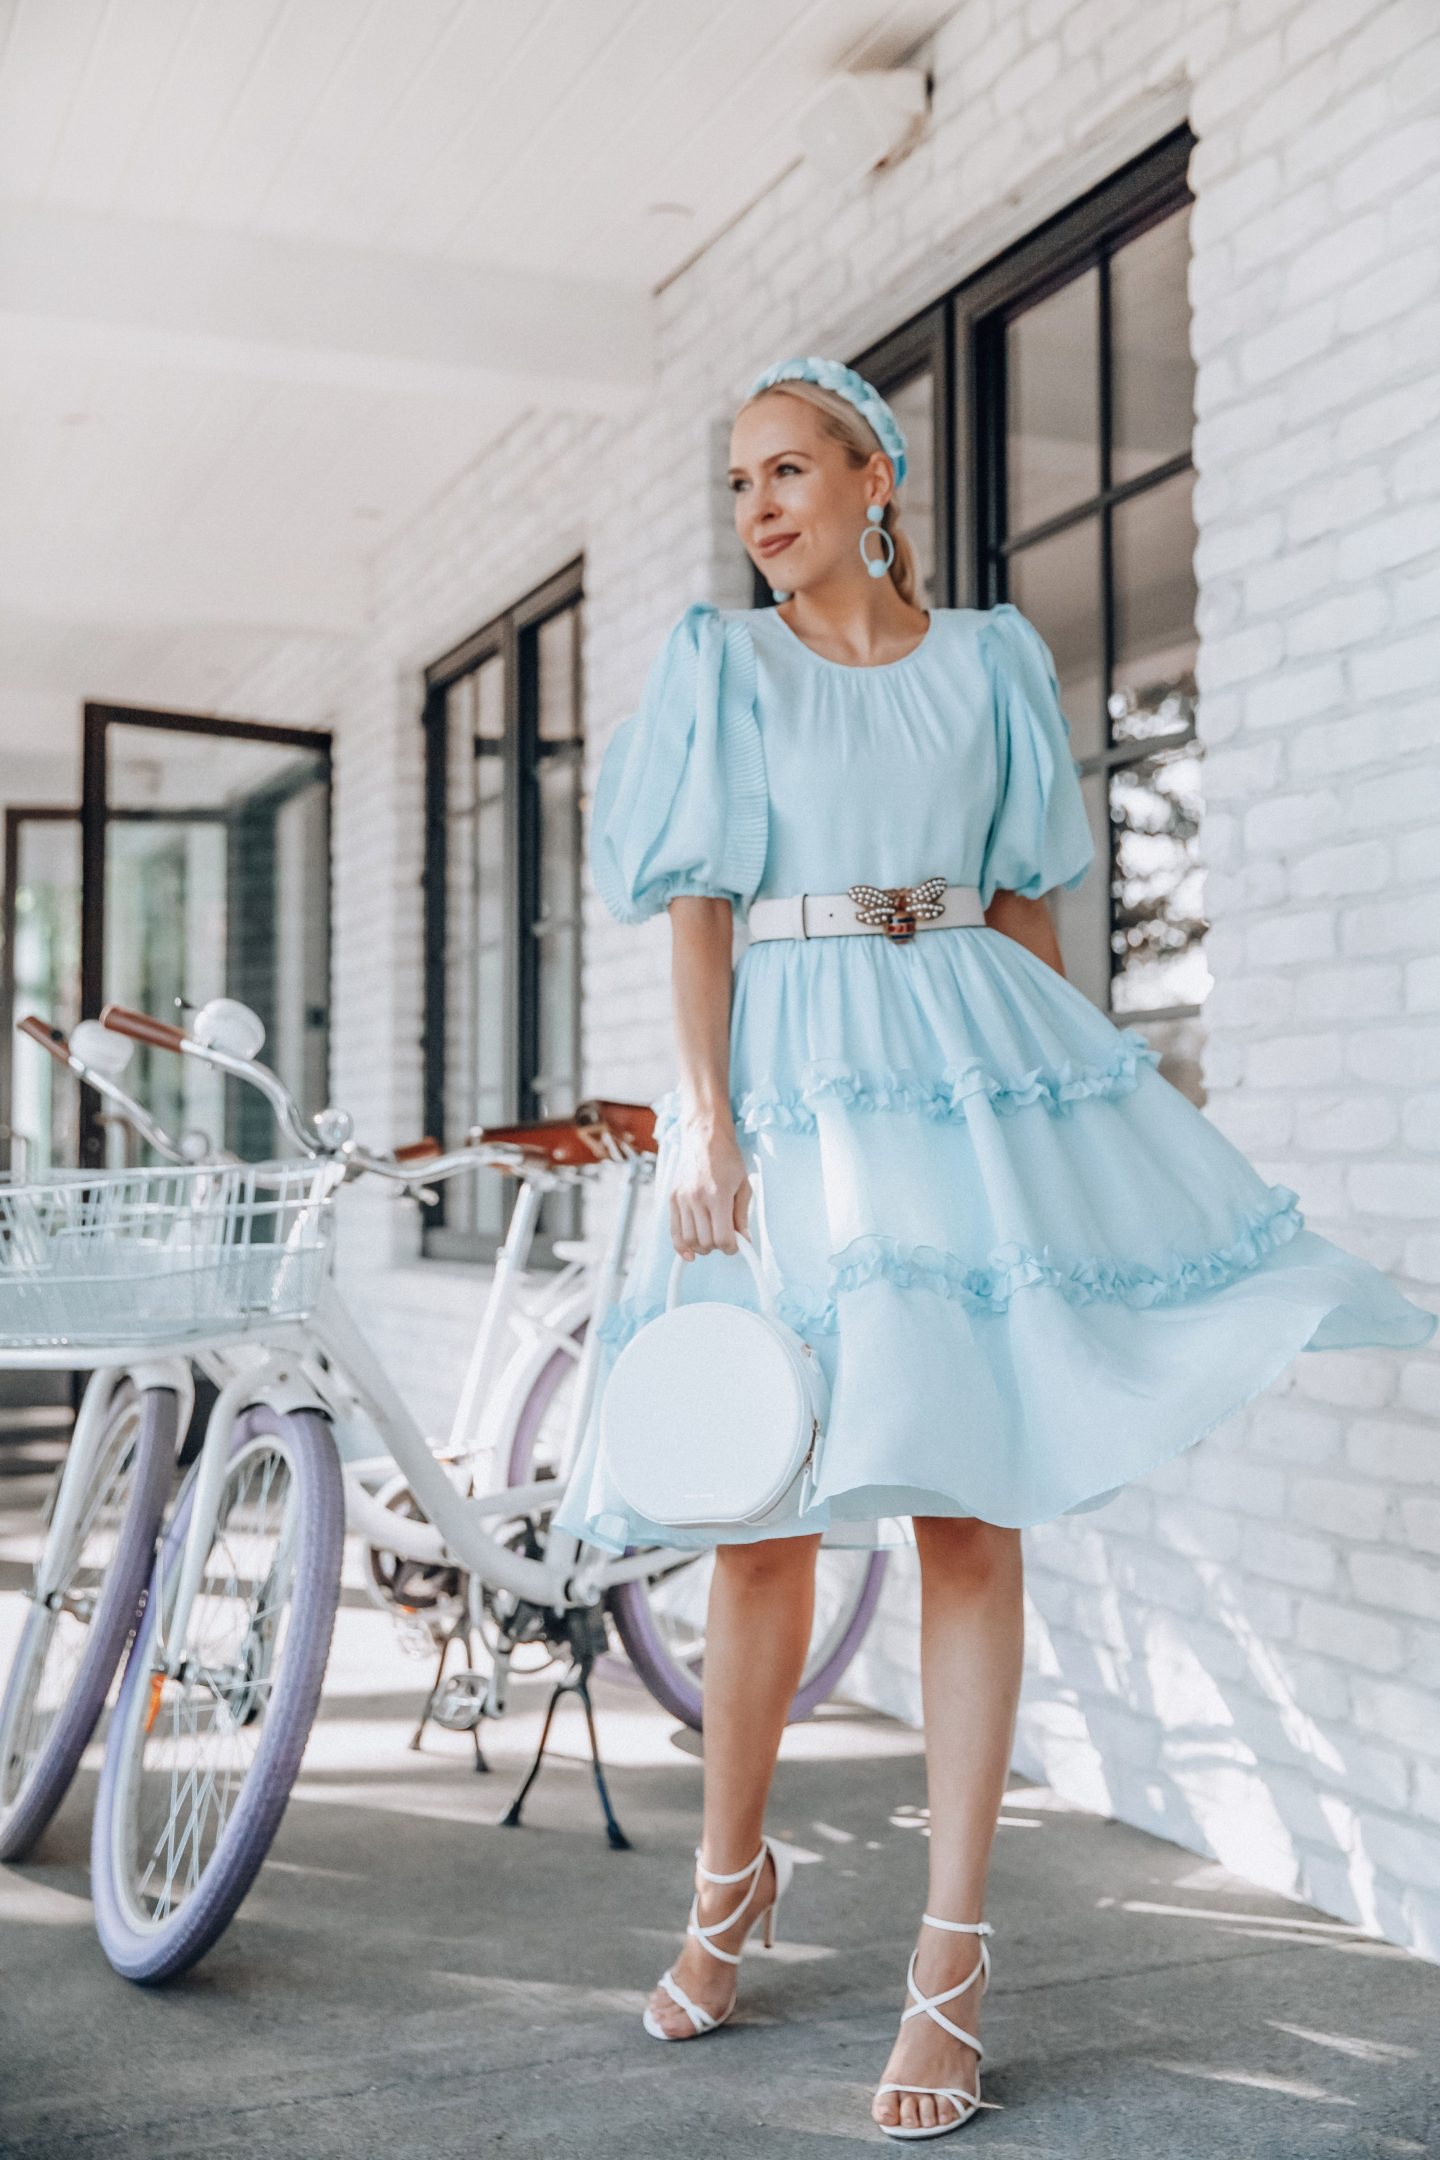 Baby blue fashion featured by top US fashion blog, Lombard and Fifth: image of a blonde woman wearing baby blue velvet headband, Rachel Parcell baby blue ruffle sleeve dress, Kendra Scott drop earrings, Gucci bee leather belt, and Mansur Gavriel white crossbody bag